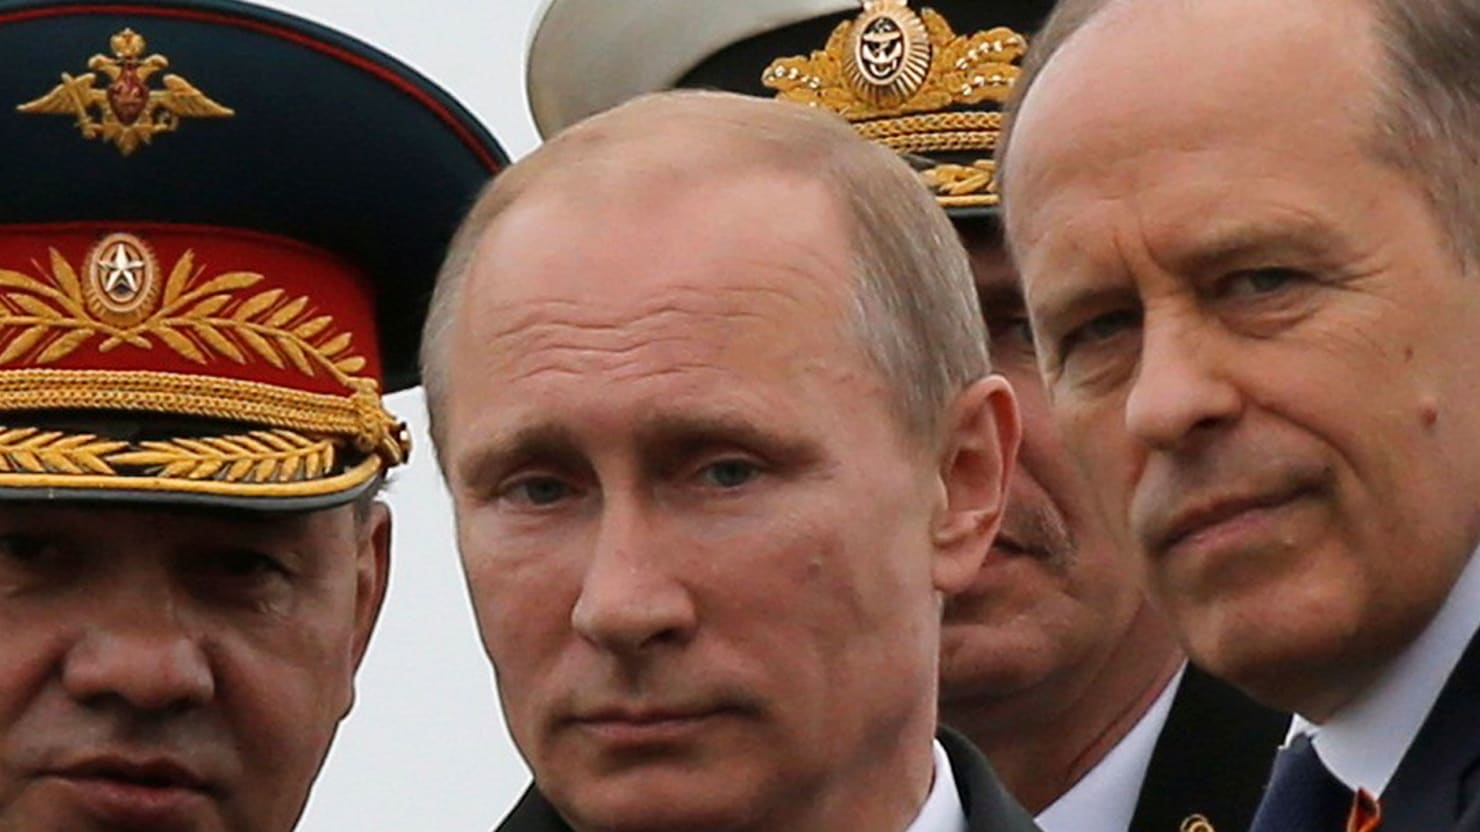 Russia Heats Up Its Infowar With the West